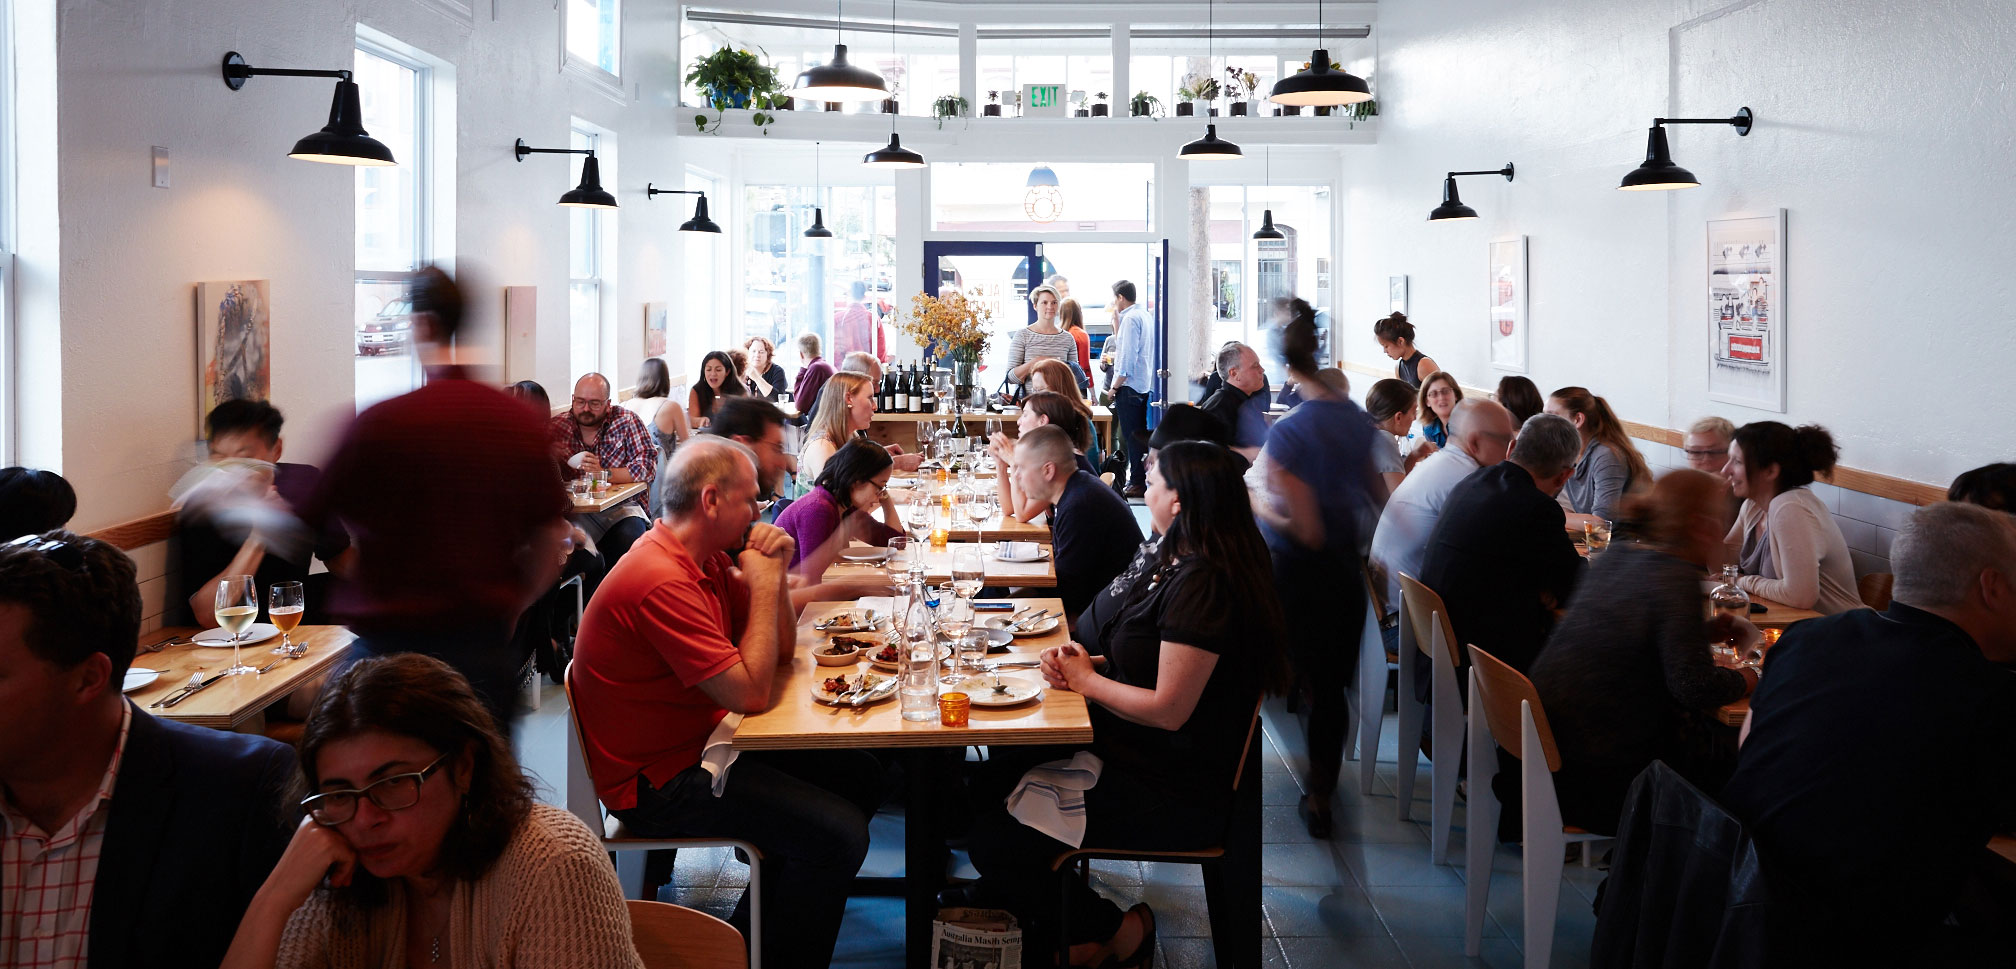 The Valencia Corridor is known for its innovative restaurants and eclectic shops.